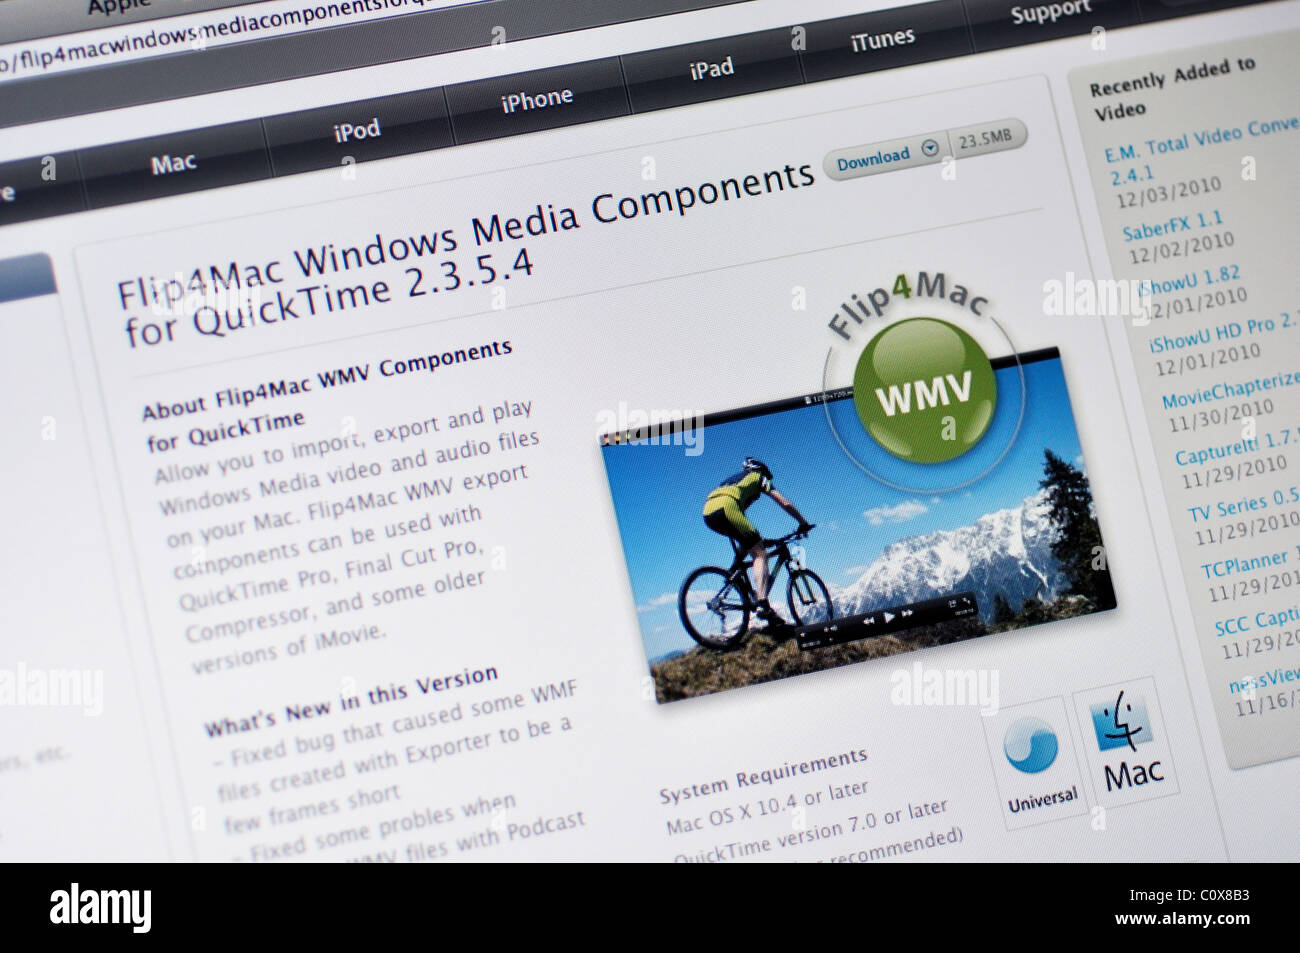 Flip4Mac WMV Windows Media components for QuickTime for making, editing, and playing Windows Media on Mac - Stock Image